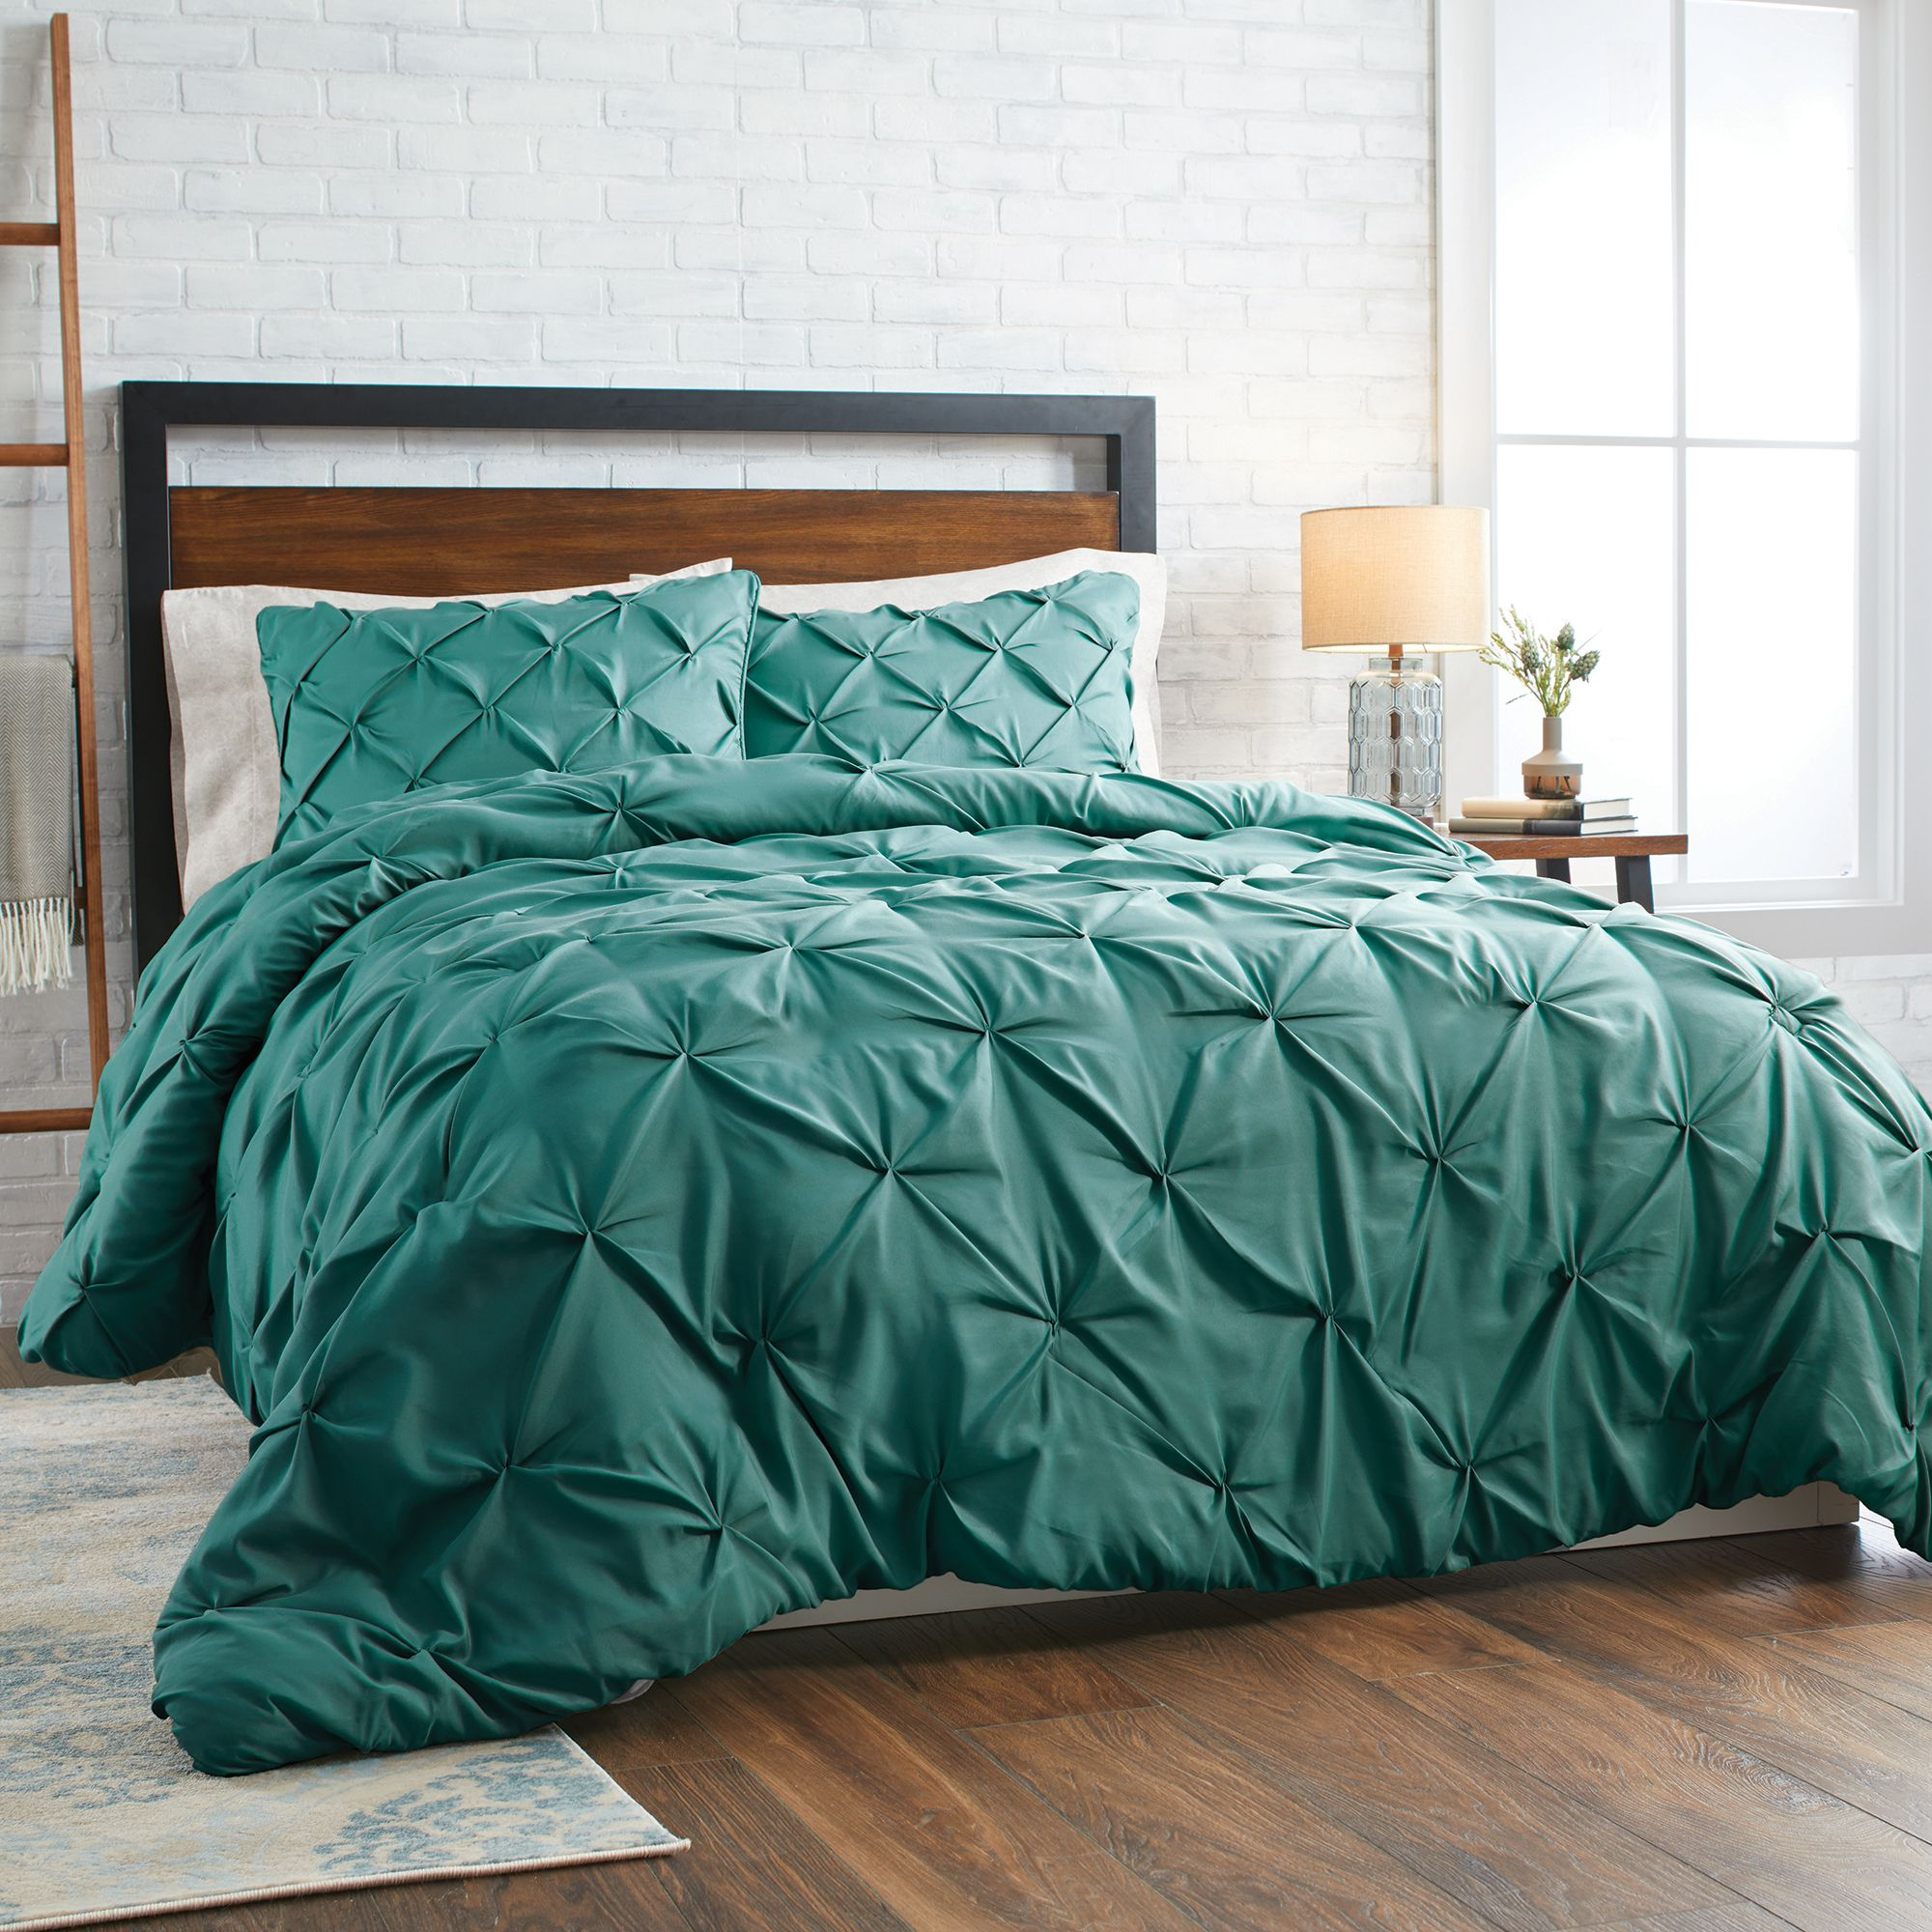 9a4f52bbb5119045d2810c03530a6ddb - Better Homes And Gardens Pintuck Bedding Comforter Mini Set